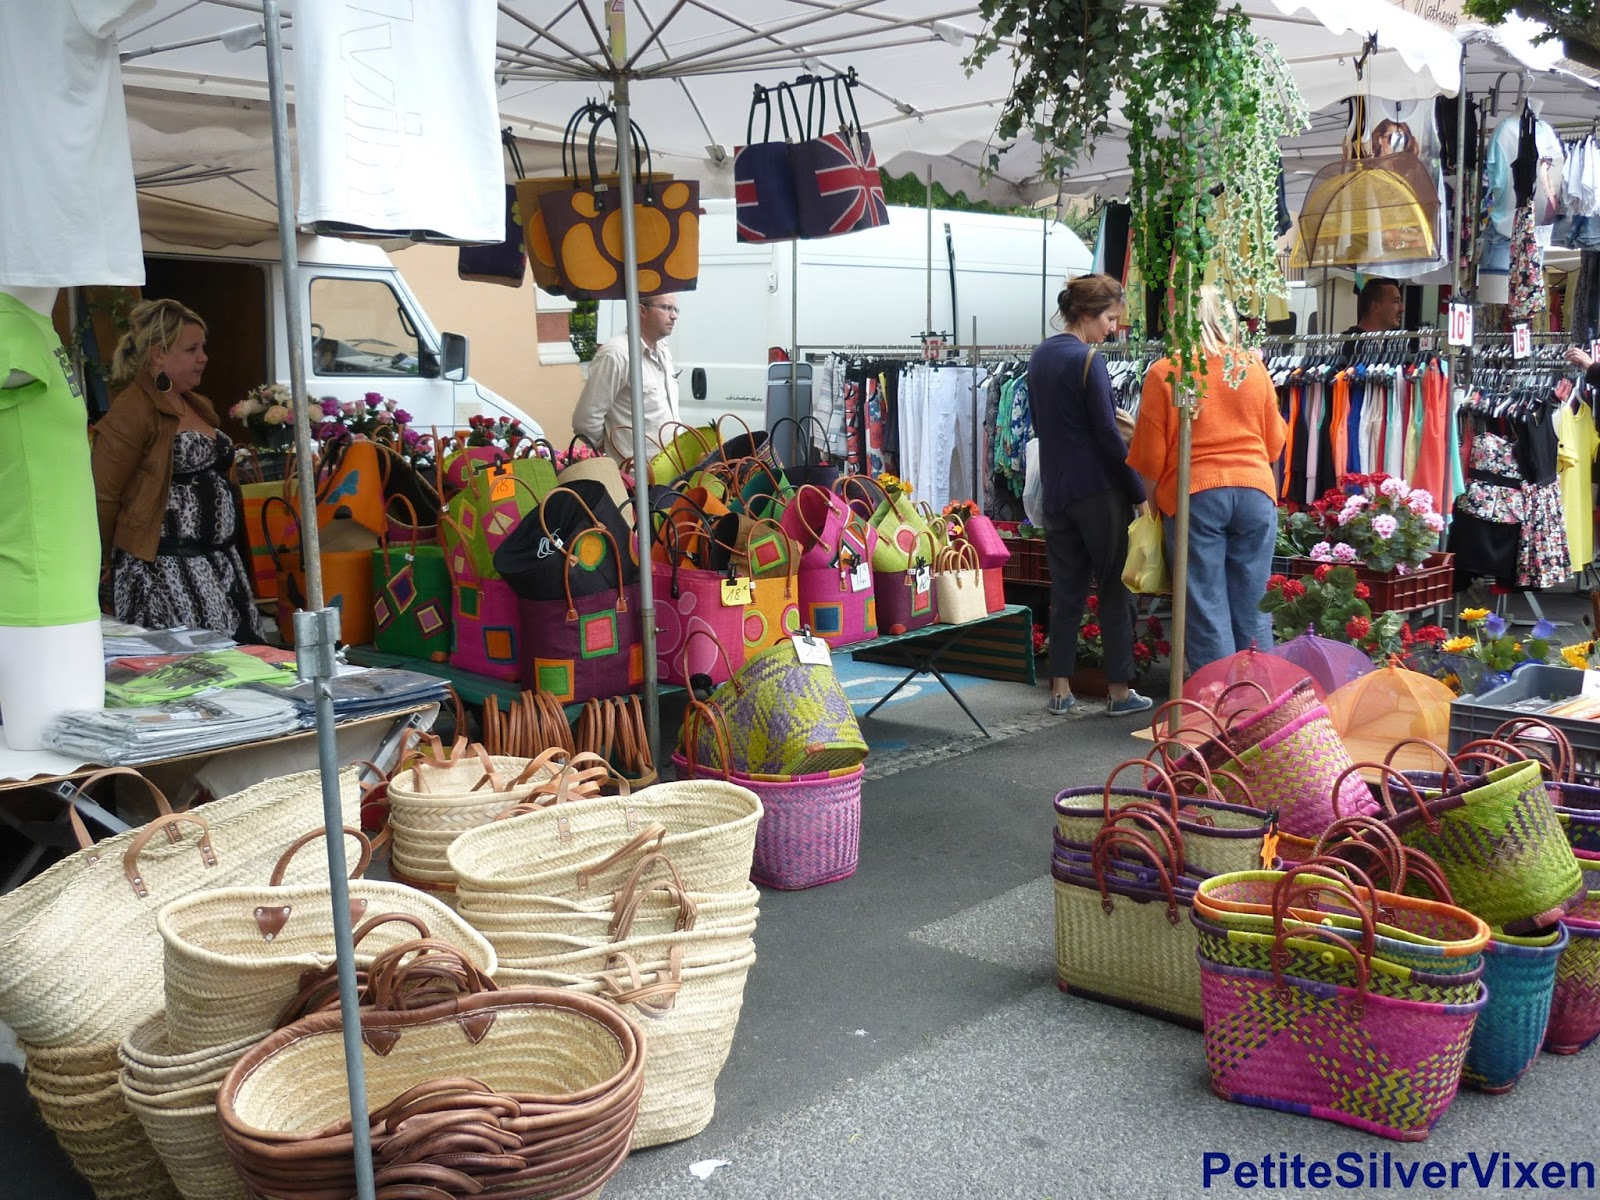 PetiteSilverVixen: Market Stall of Colourful Baskets